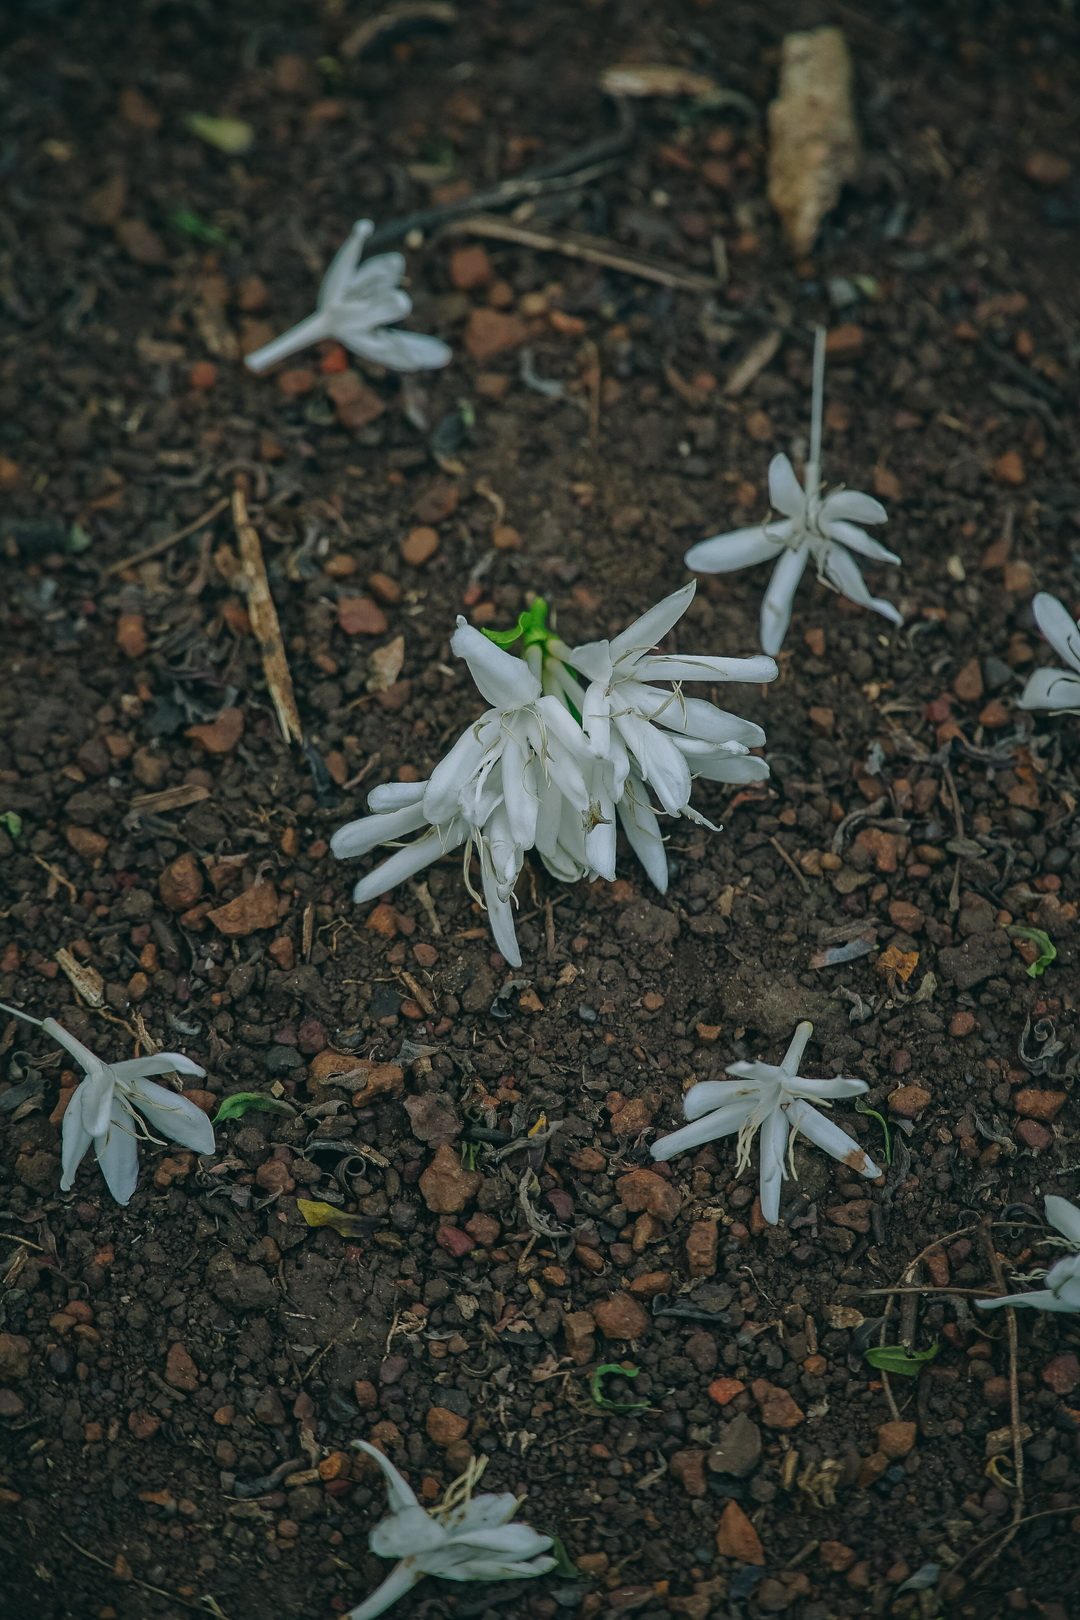 Coffee flowers on the ground in the garden of Nguyen's father in the Central Highlands province of Dak Lak. Photo: Van Nguyen